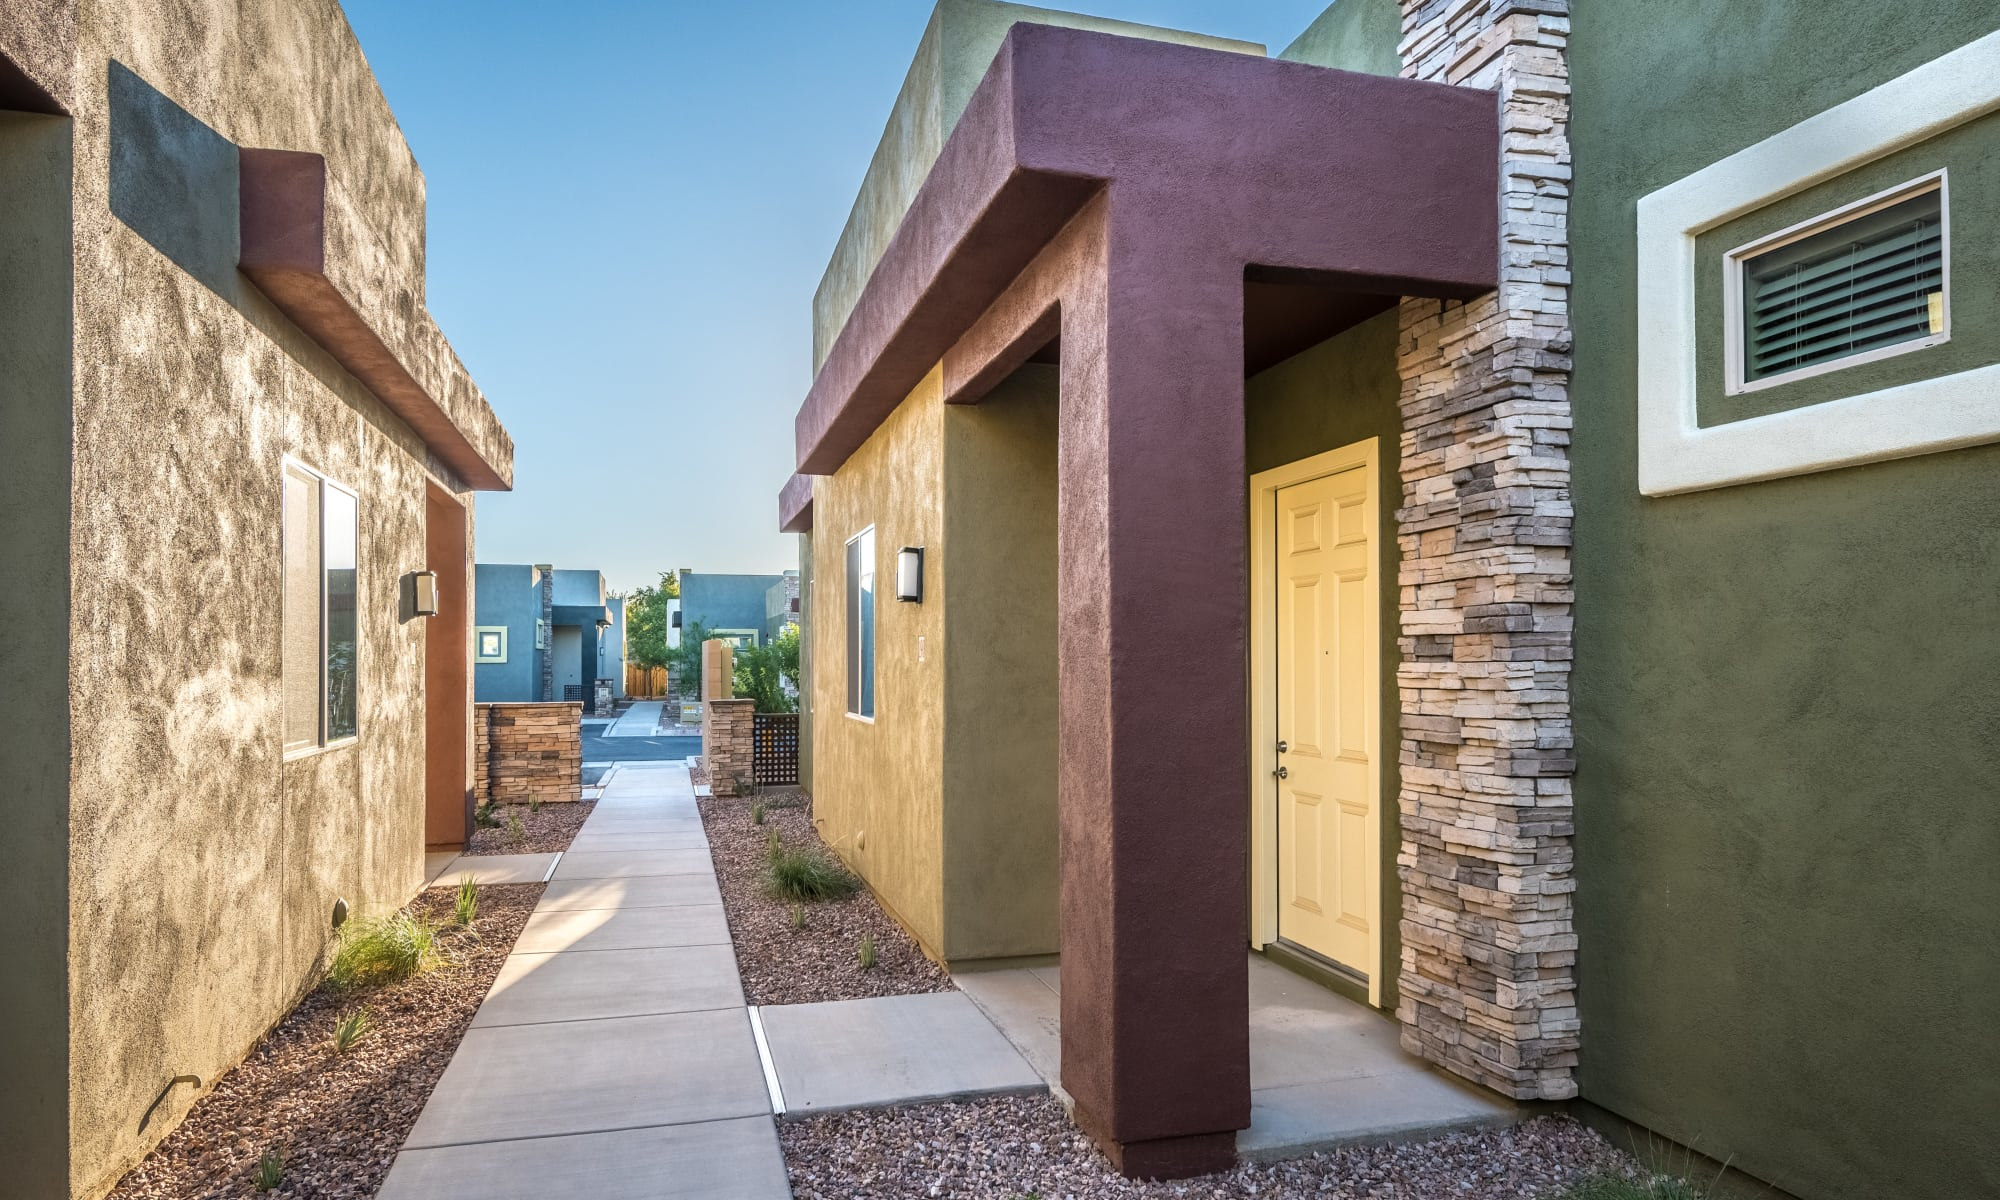 Avilla Grace apartments in Chandler, Arizona